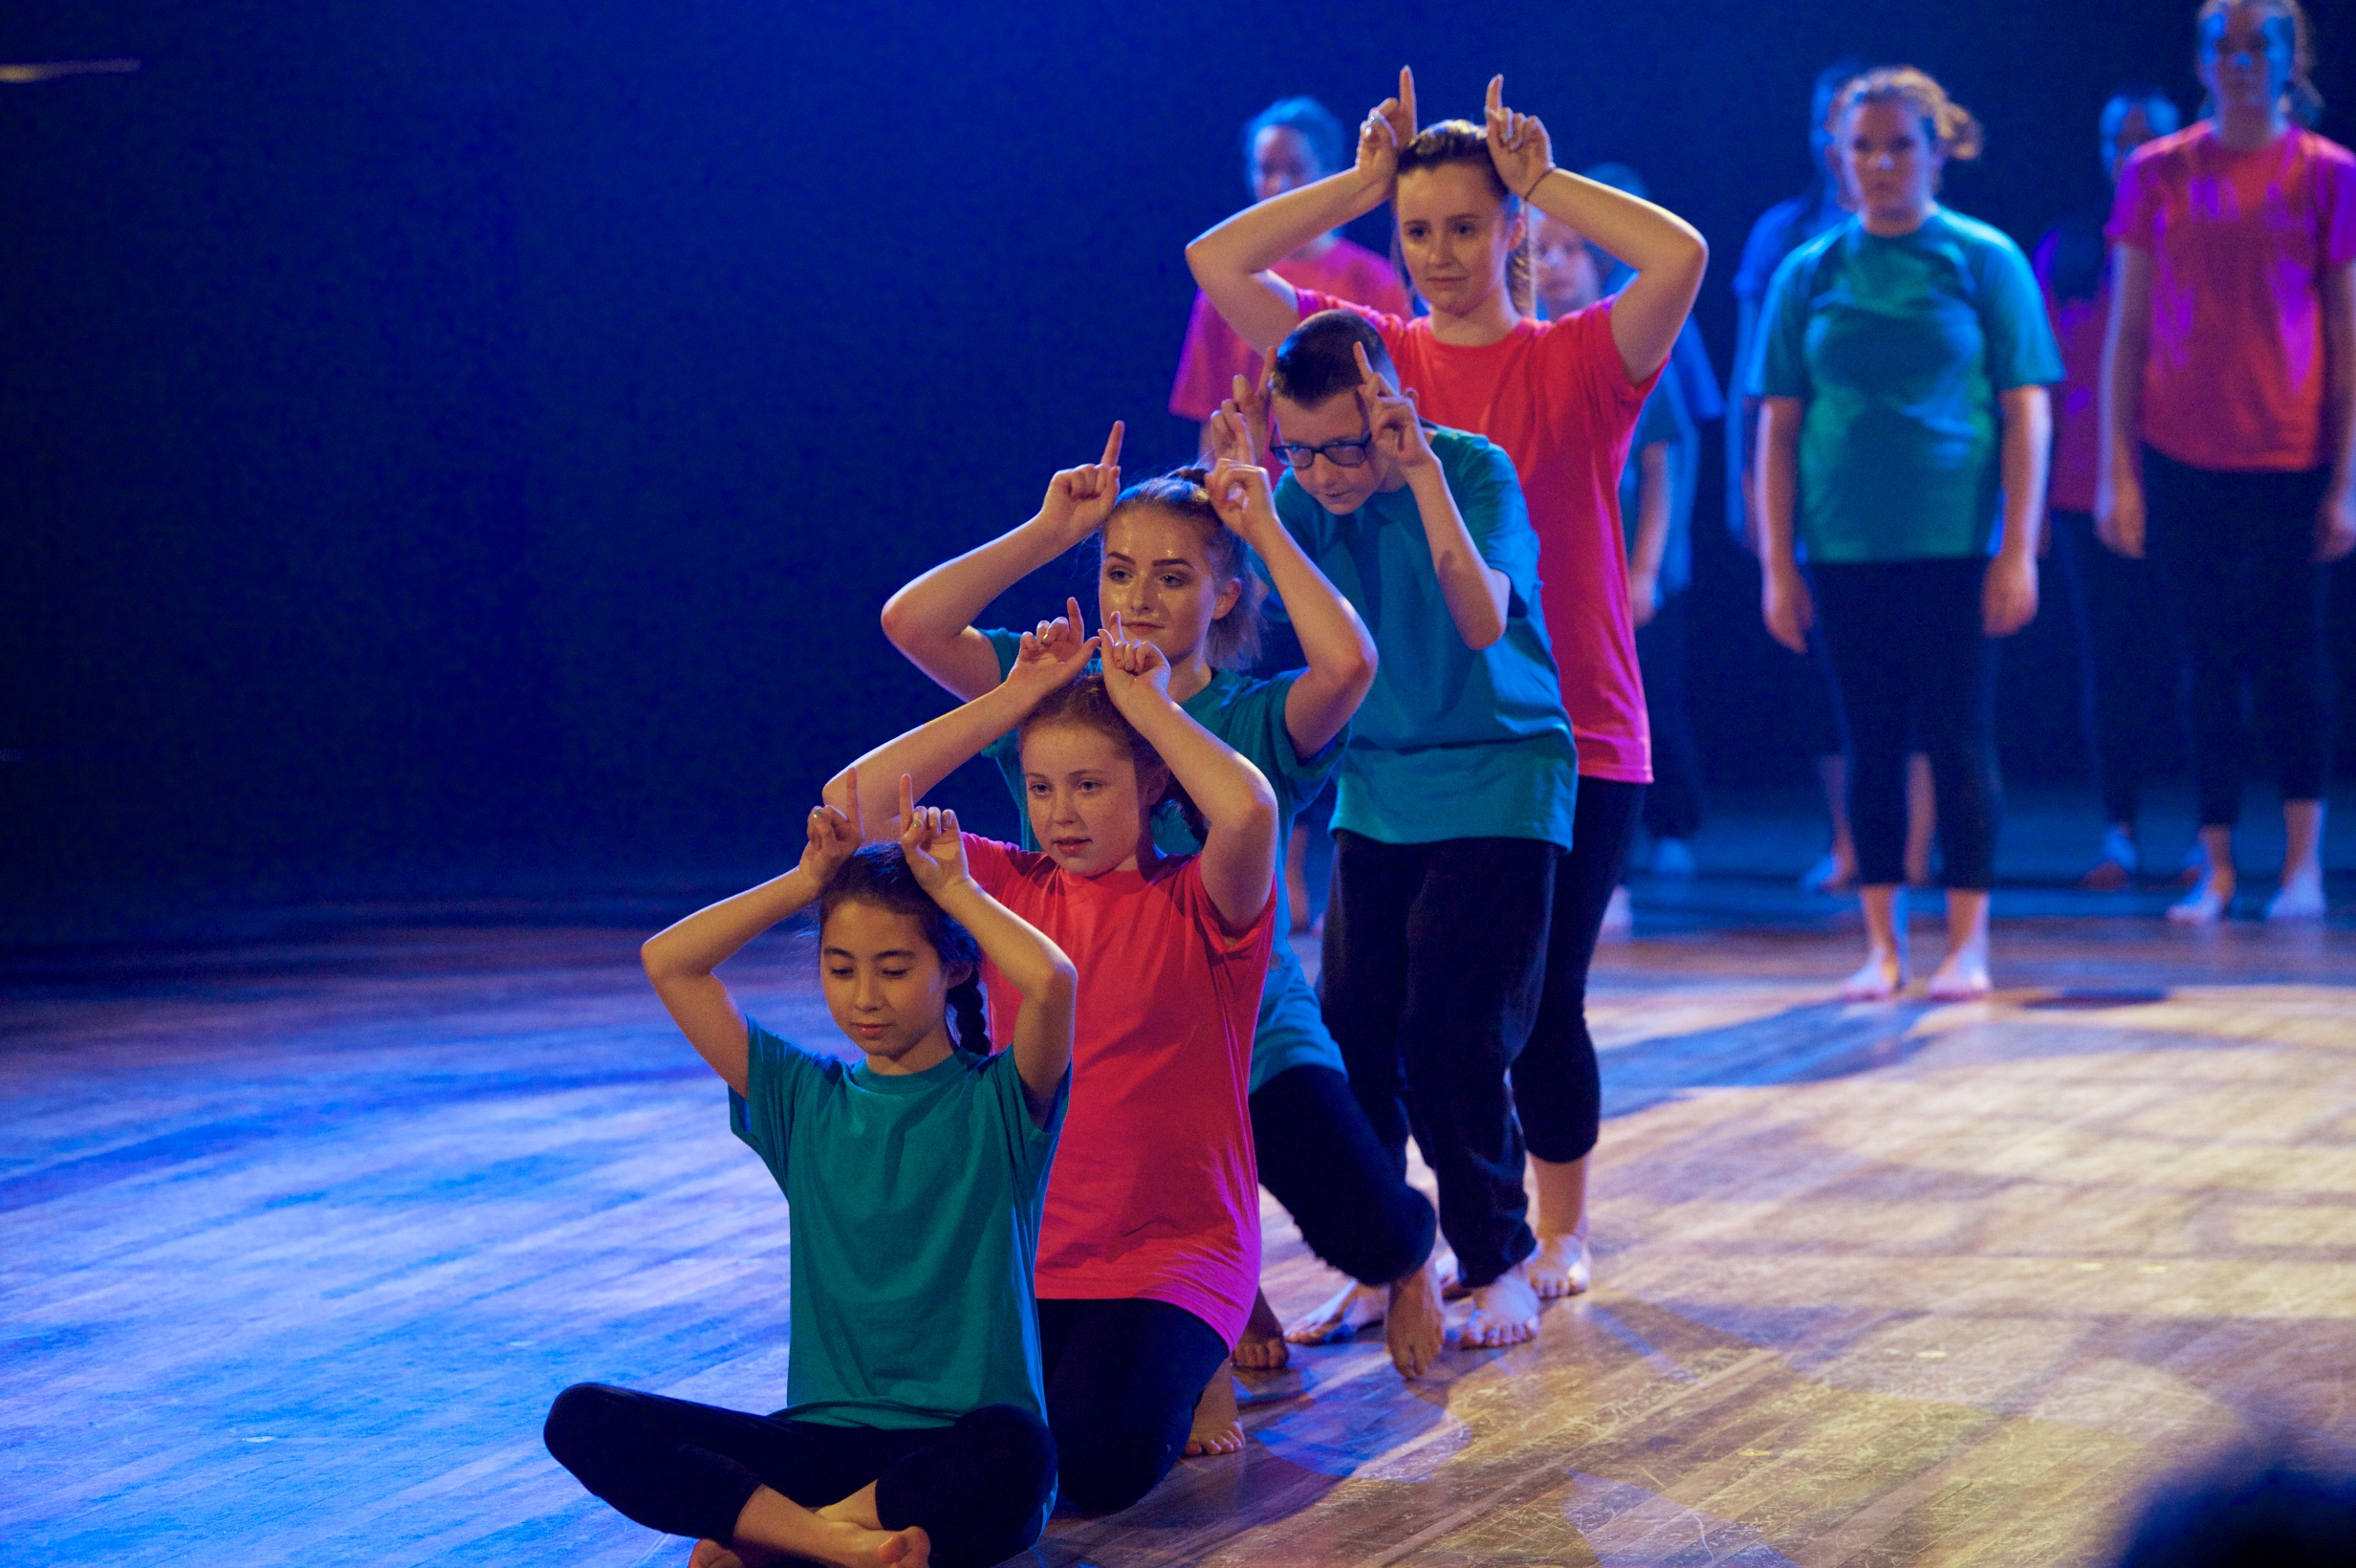 Paisley 2021 funding brings Olivier award-winning dance company to town